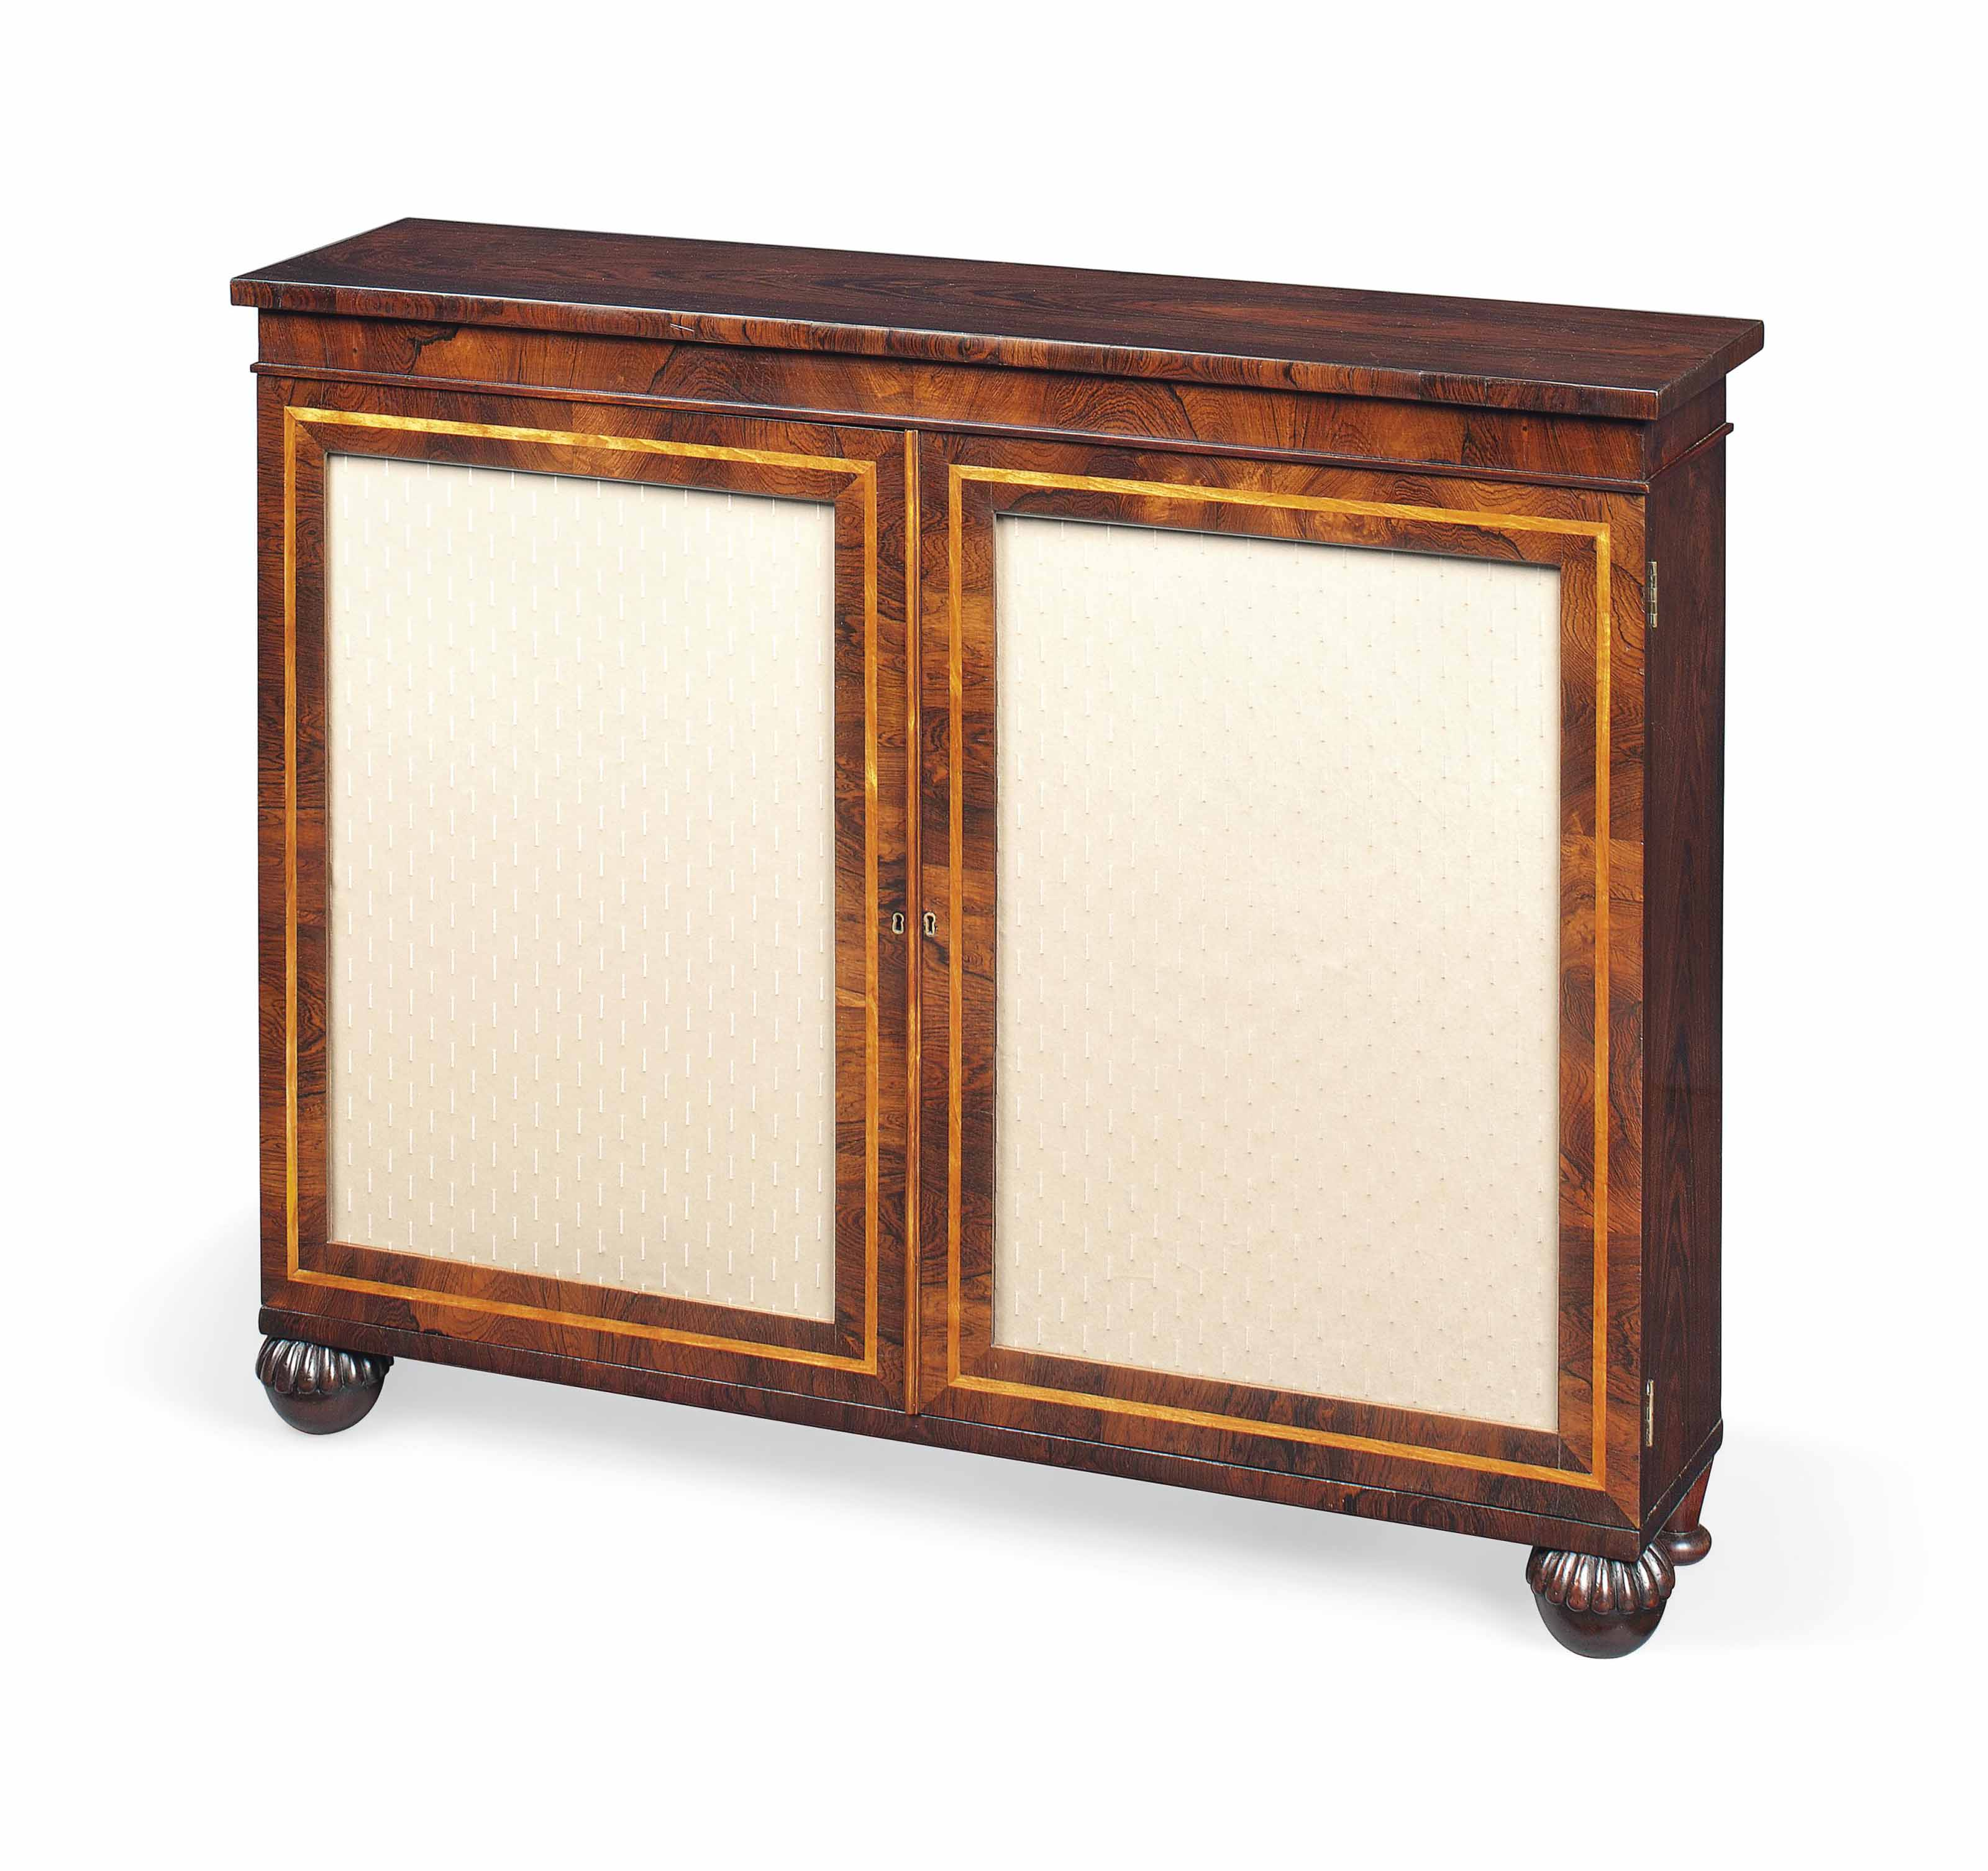 A REGENCY ROSEWOOD AND SATINBIRCH BANDED SIDE CABINET